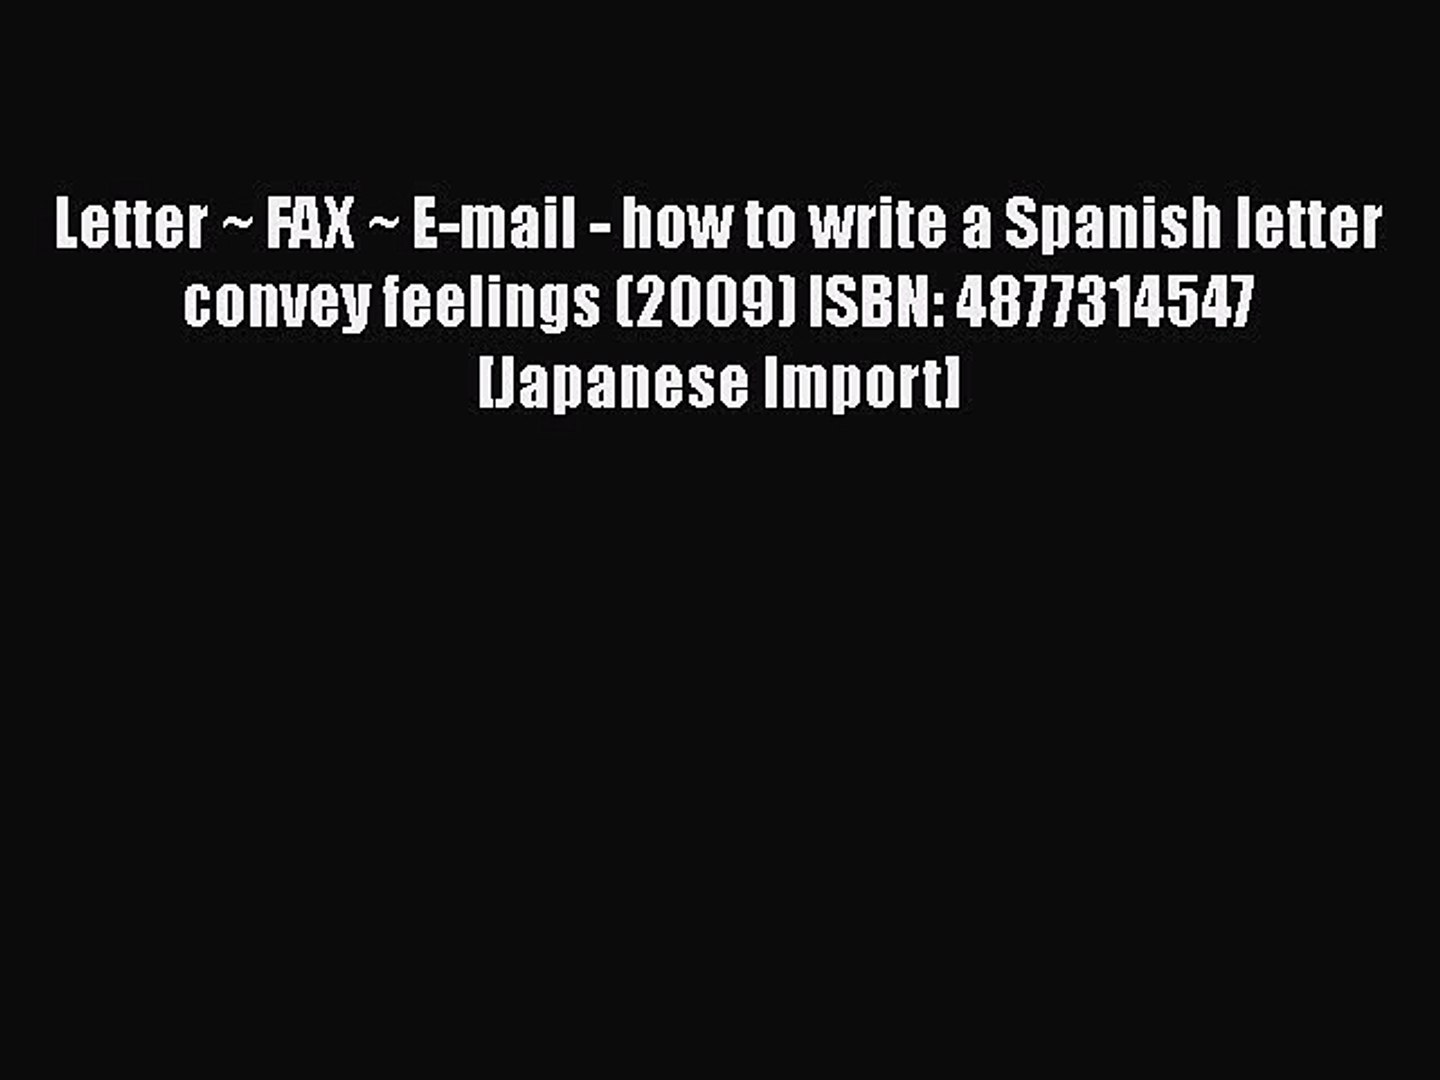 [PDF] Letter ~ FAX ~ E-mail - how to write a Spanish letter convey feelings (2009) ISBN: 4877314547